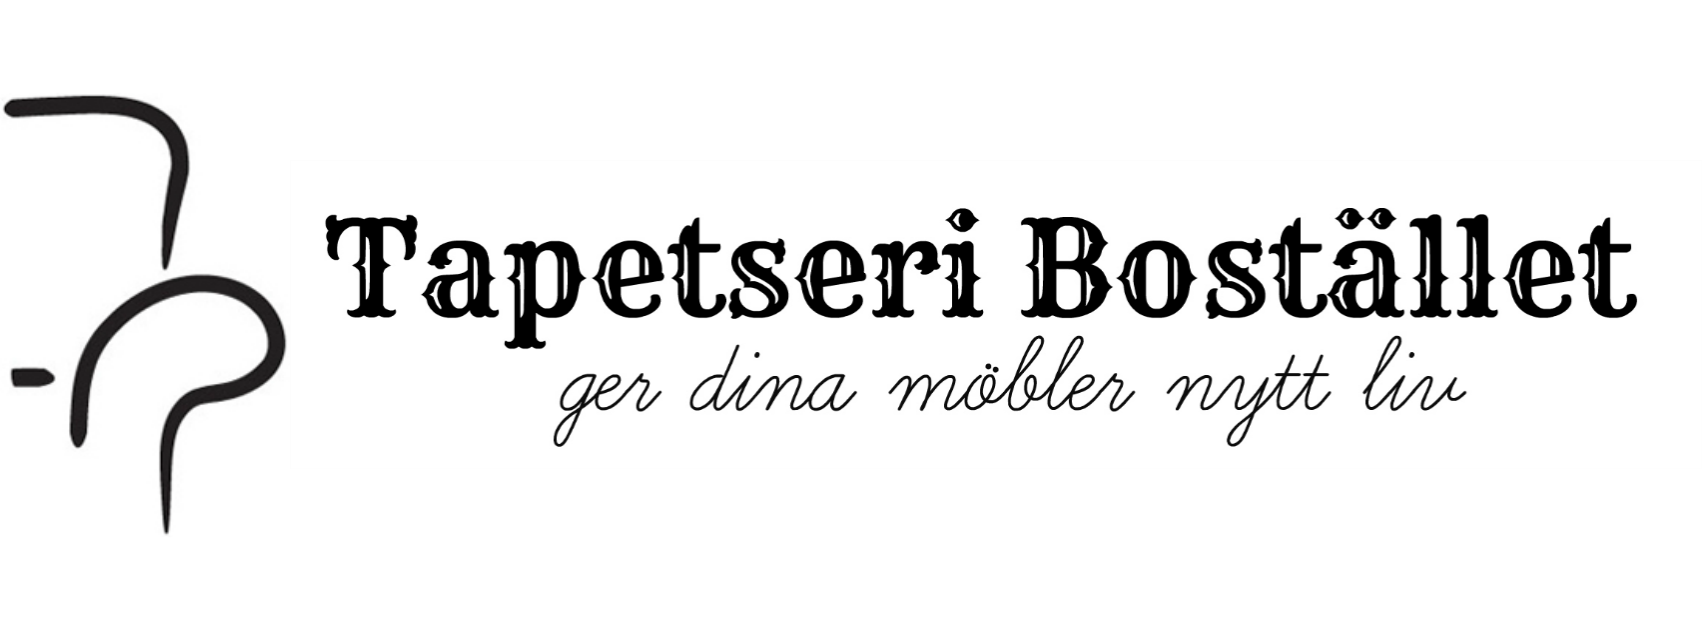 Tapetseri Bostället_Mobilversion_apr2017